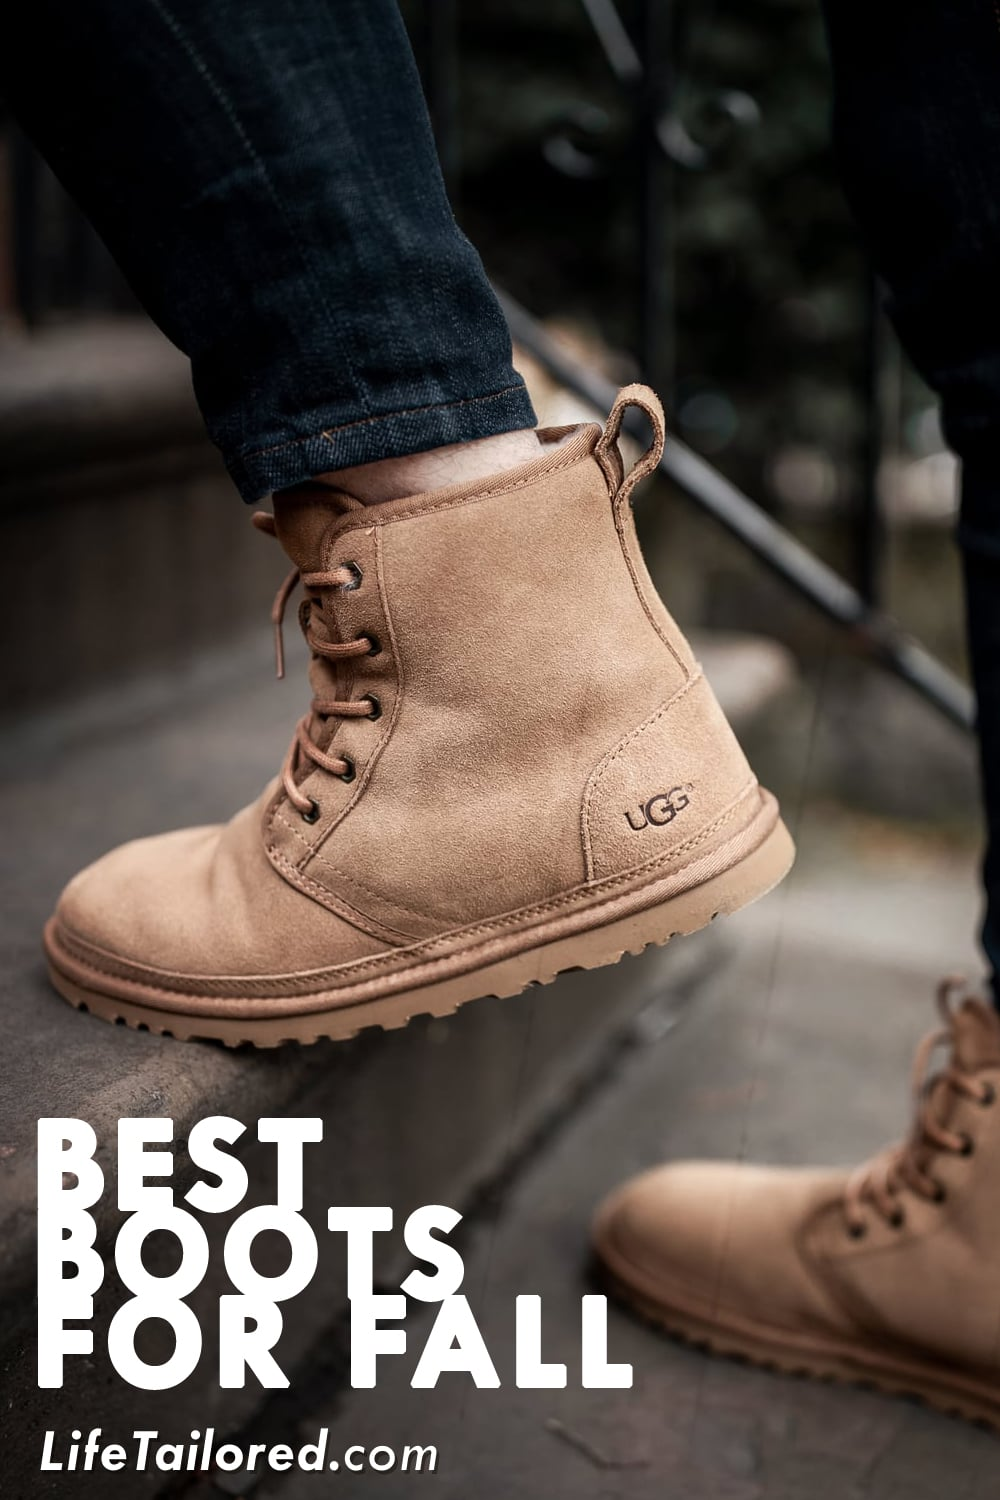 How to Style a Pair of Men's UGG Boots